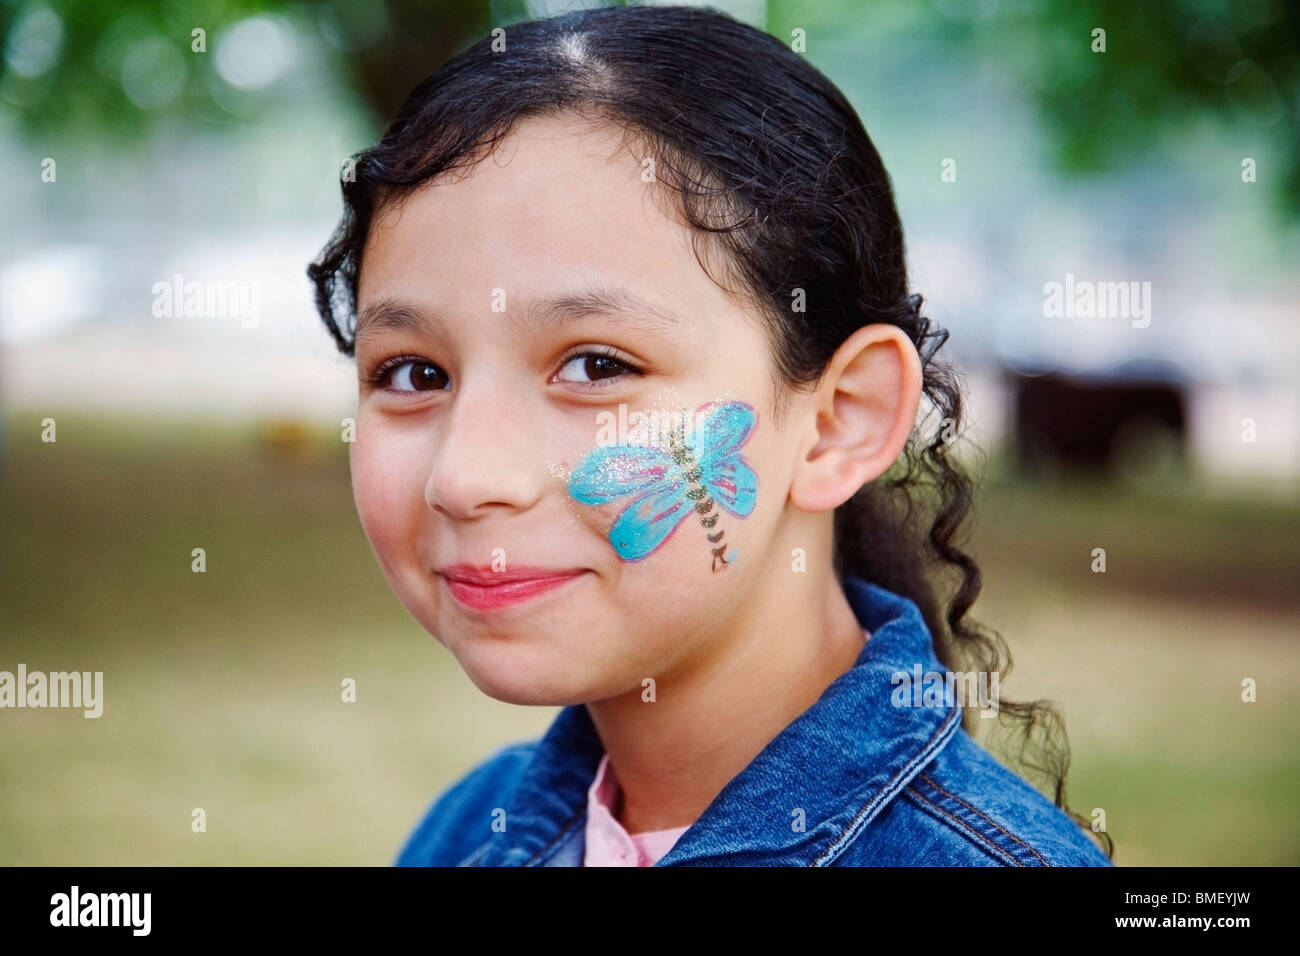 A Girl With A Butterfly Painted On Her Face - Stock Image